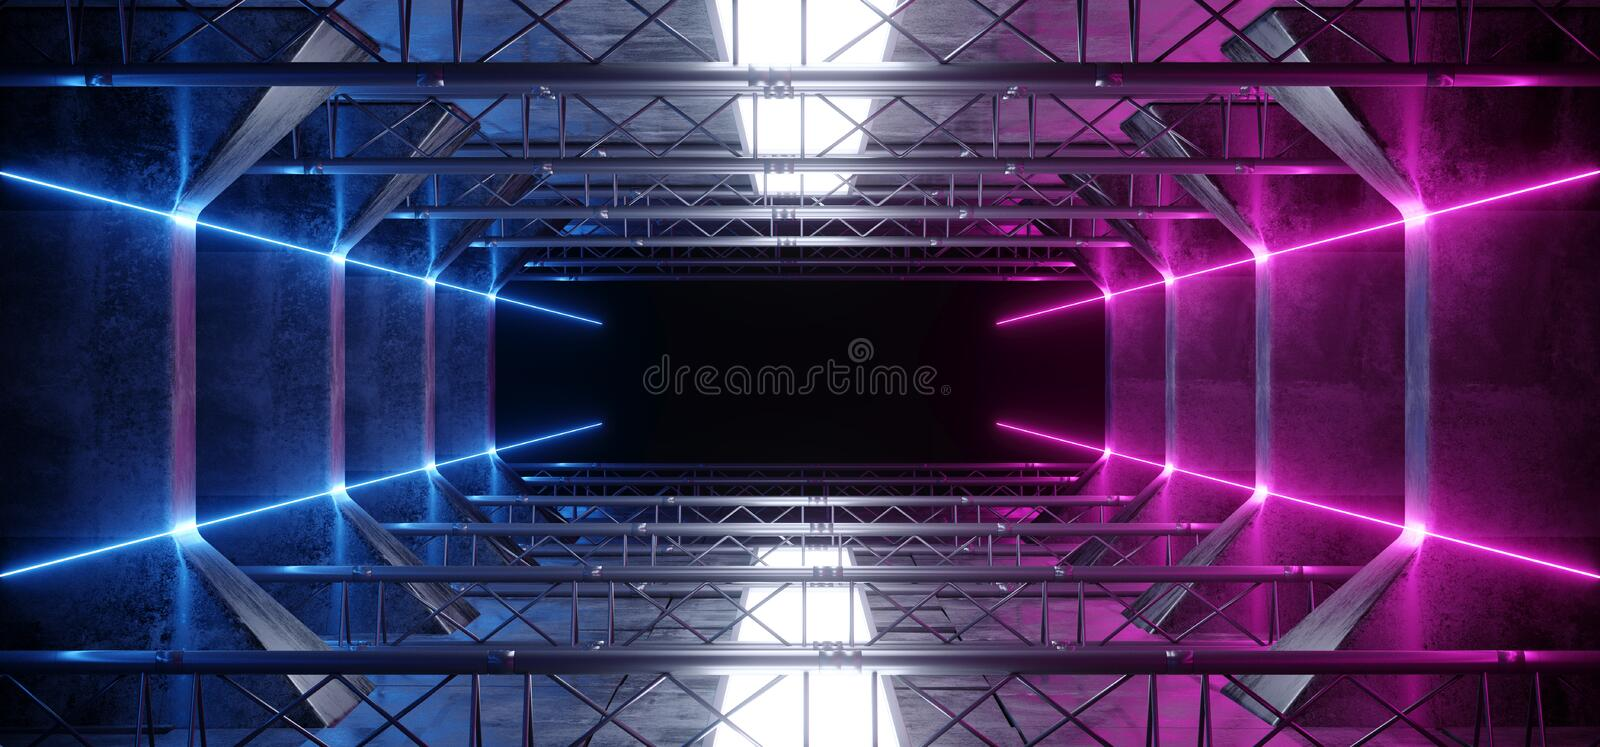 Alien Sci Fi Neon Led Laser Vibrant Purple Pink Blue Glowing Dark Light Lines In Futuristic Modern Construction Stage Tunnel royalty free stock photo